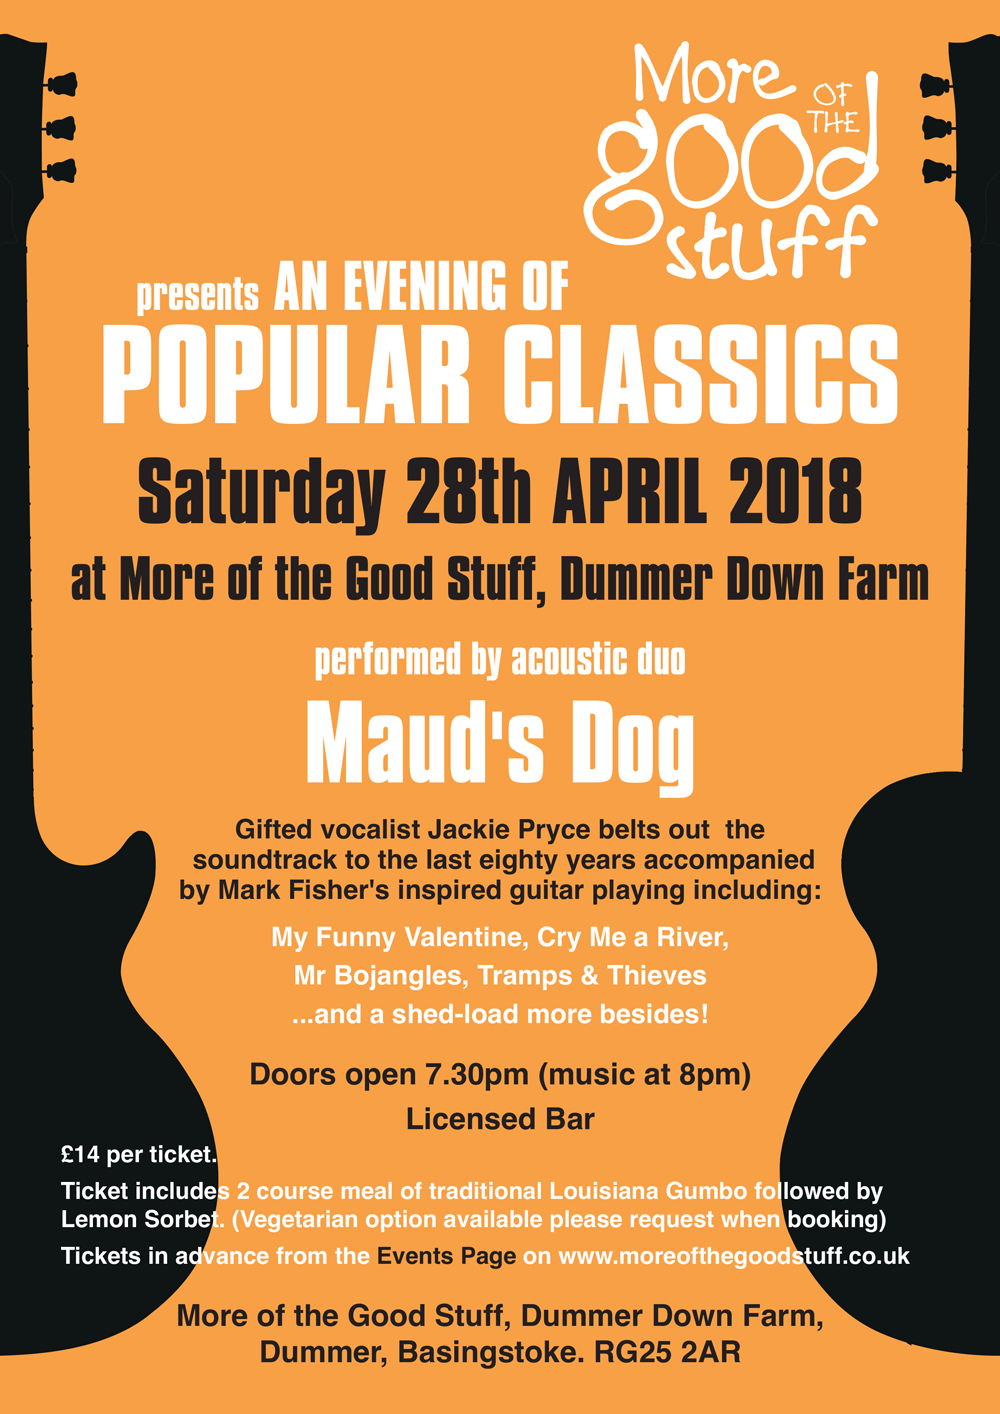 An Evening of Popular Classics Performed by acoustic duo Maud's Dog - Local talented acoustic duo Maud's Dog aka Jackie Pryce and Mark Fisher, perform an evening of popular classics here at MOTGS. Gifted vocalist Jackie belts out the soundtrack to the last 80 years accompanied by Mark Fisher. Songs include my funny Valentine, Cry Me A River, Mister Bojangles, Tramps and Thieves...£14 per ticket which INCLUDES delicious 2 course meal of traditional Louisiana Gumbo followed by Lemon sorbet.